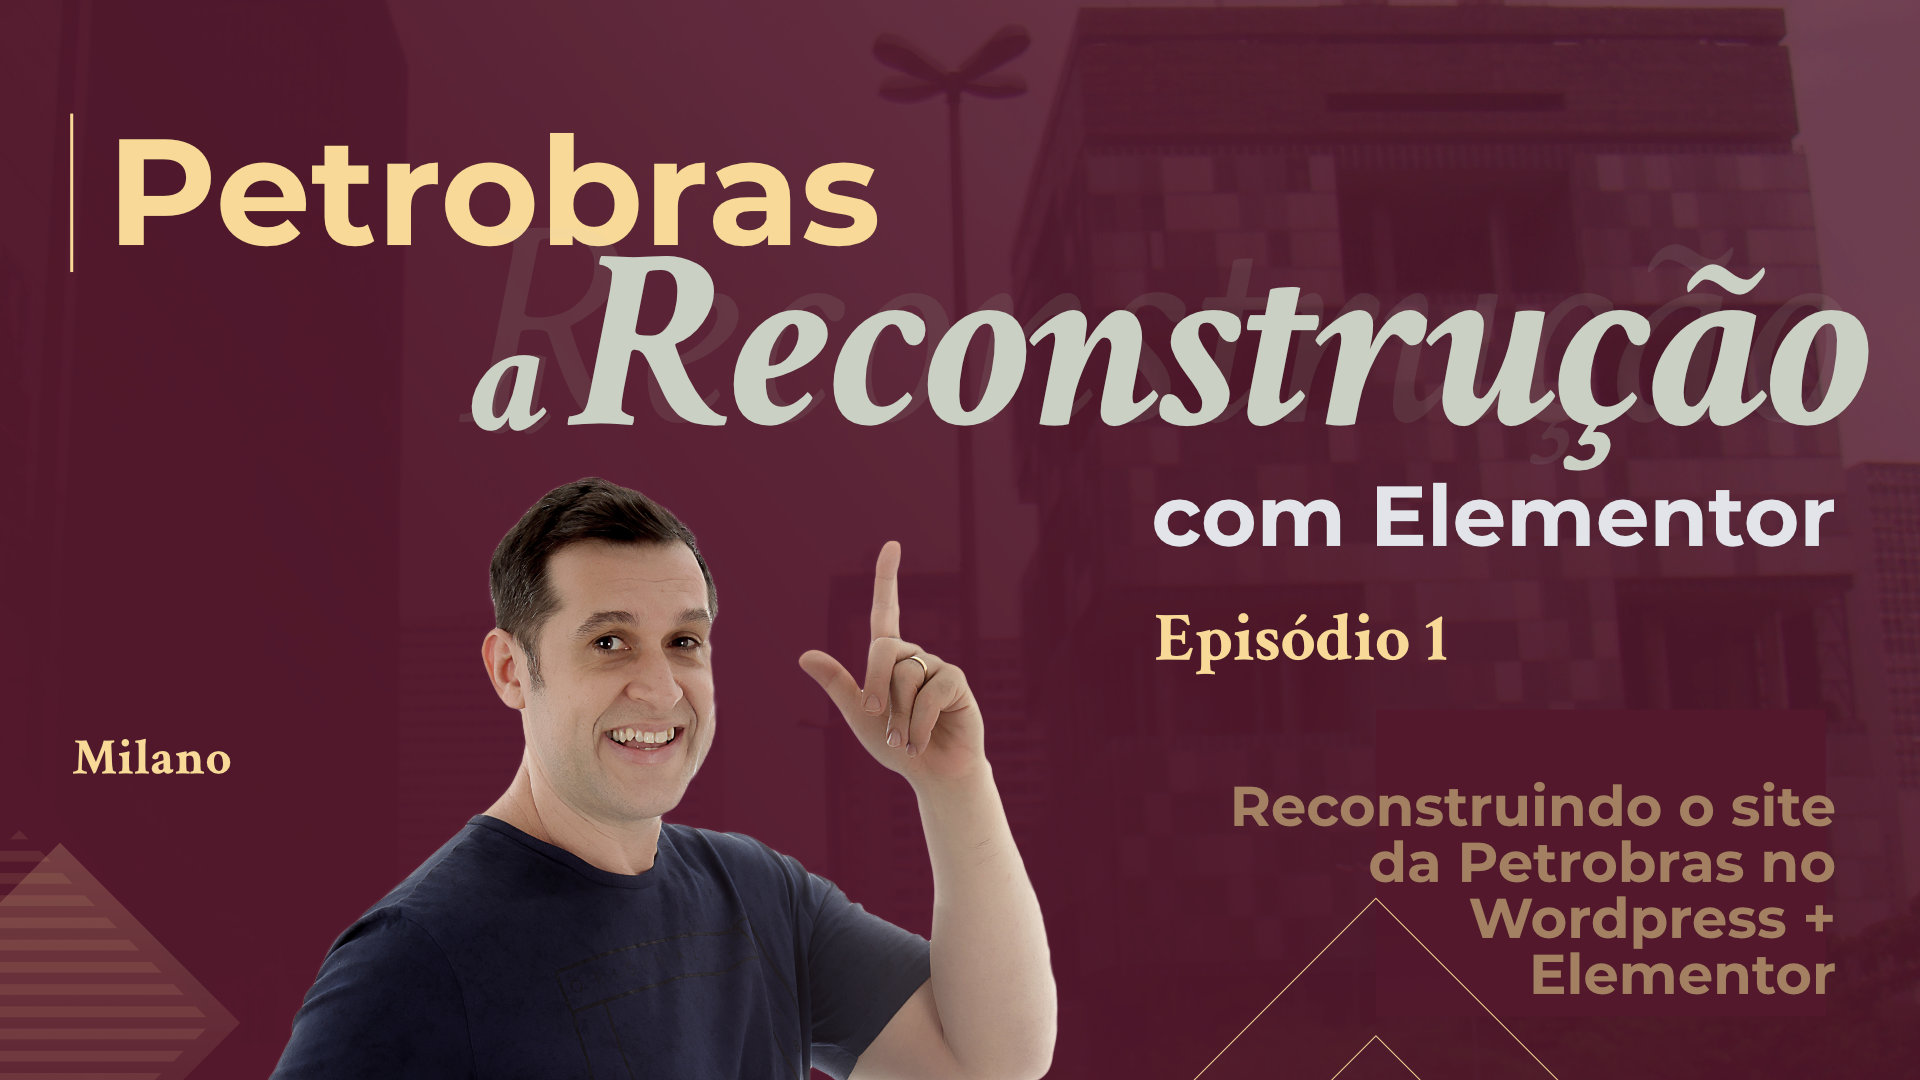 Reconstruction of the Petrobras website with Elementor and Wordpress